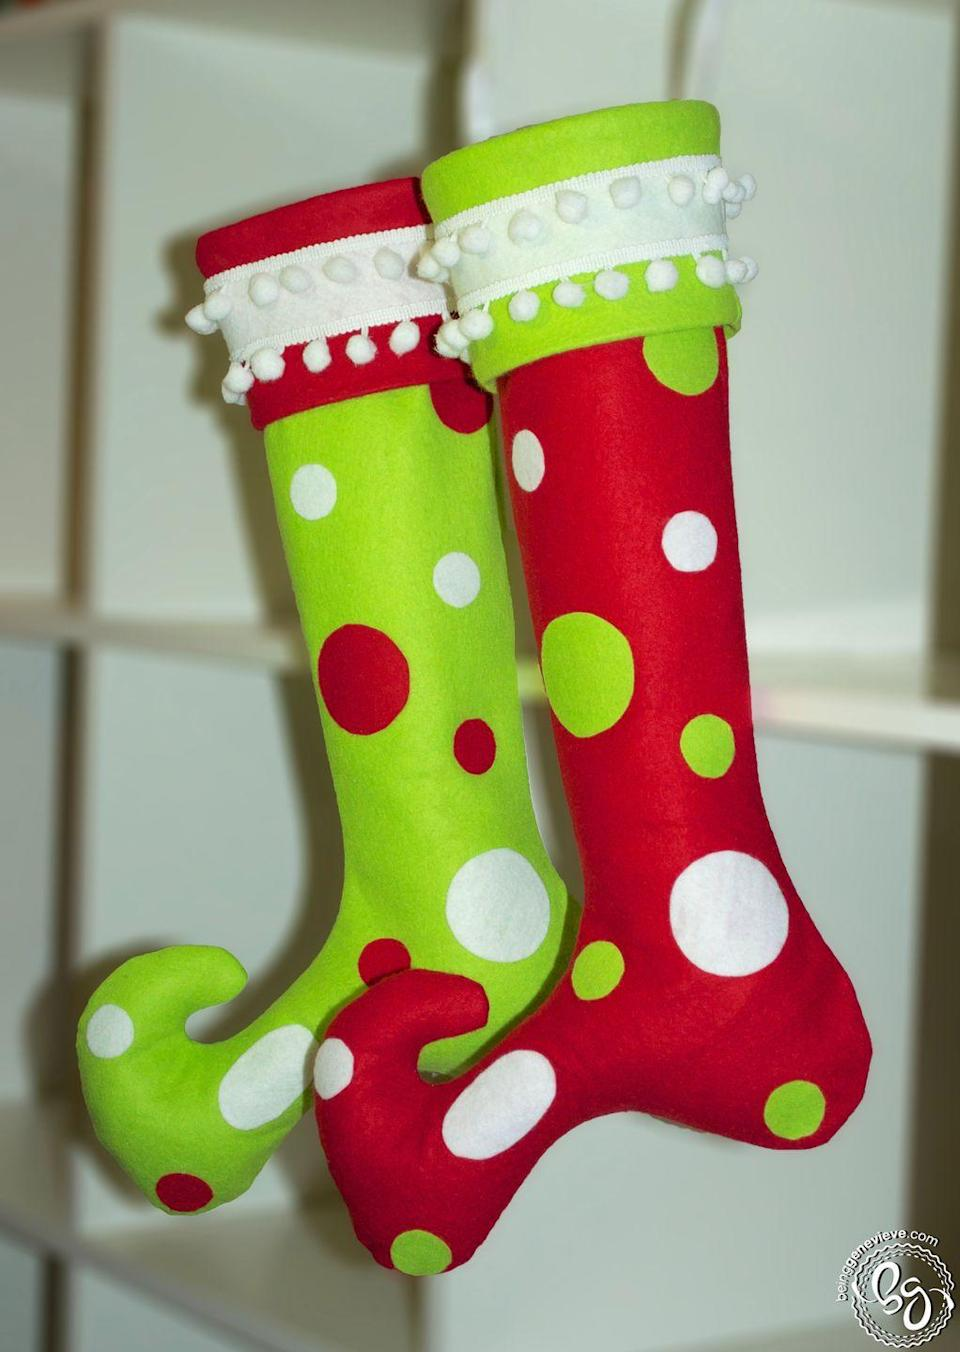 "<p>These felt stockings with pom-pom trim would be a perfect fit on a mantel that belongs to both Little Cindy Lou Who and you!<br></p><p><strong>Get the tutorial at <a href=""http://beinggenevieve.com/whoville-christmas-stockings/"" rel=""nofollow noopener"" target=""_blank"" data-ylk=""slk:Being Genevieve"" class=""link rapid-noclick-resp"">Being Genevieve</a>.</strong><strong><br></strong></p><p><strong><a class=""link rapid-noclick-resp"" href=""https://www.amazon.com/FabricLA-Acrylic-Felt-Yard-Wide/dp/B084Z2YNHN/ref=sr_1_2?crid=VTMIYPDRE8B1&dchild=1&keywords=red+felt+fabric&qid=1603063852&sprefix=red+felt%2Caps%2C153&sr=8-2&tag=syn-yahoo-20&ascsubtag=%5Bartid%7C10050.g.28982778%5Bsrc%7Cyahoo-us"" rel=""nofollow noopener"" target=""_blank"" data-ylk=""slk:SHOP RED FELT"">SHOP RED FELT</a></strong></p>"